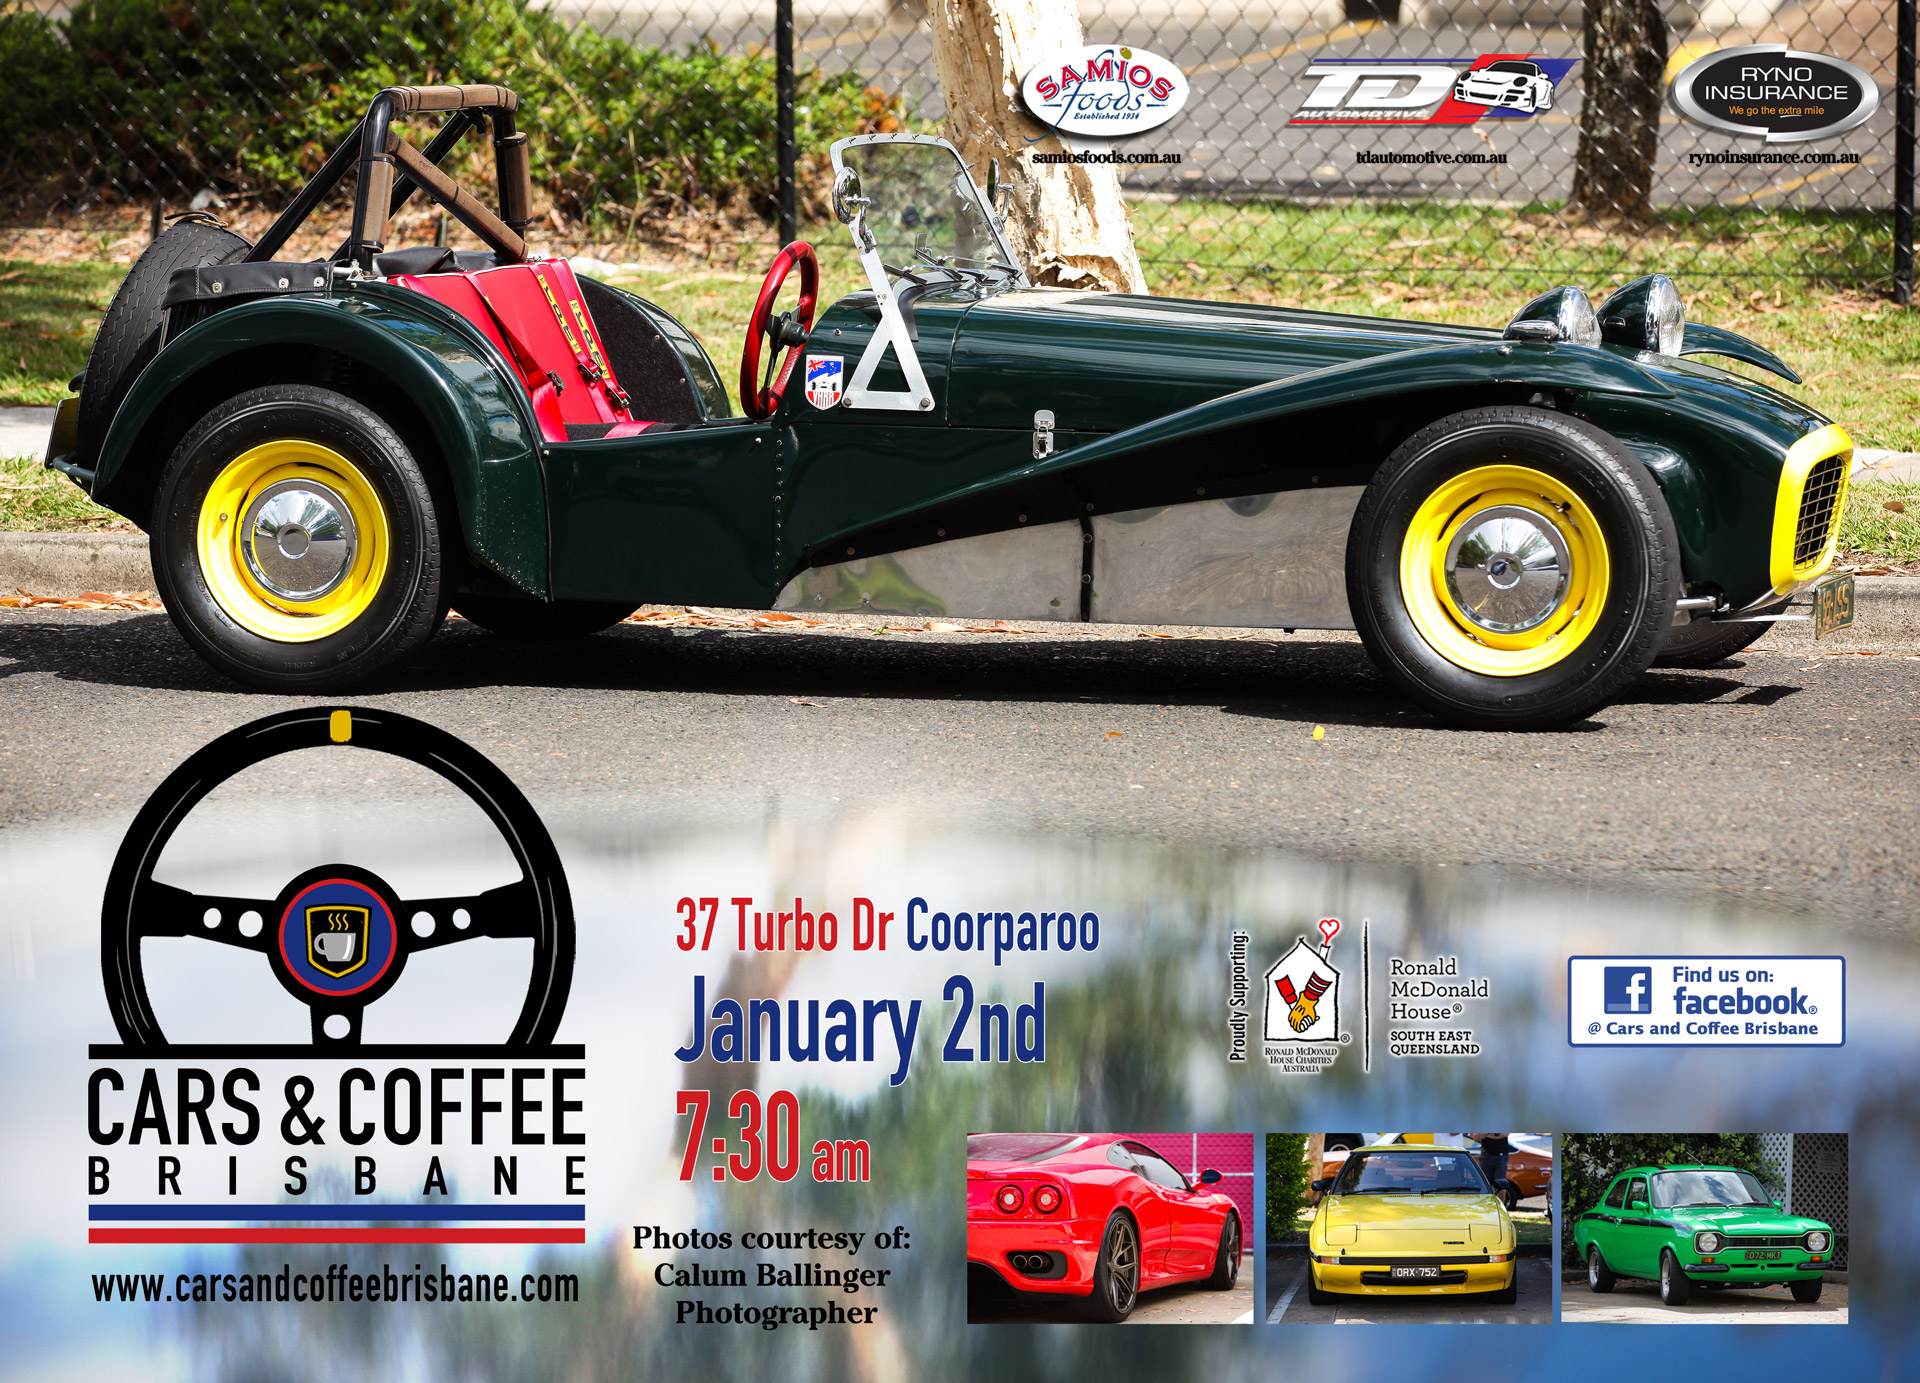 Cars & Coffee Brisbane | Classic Cars, Great Coffee and No Flat ...